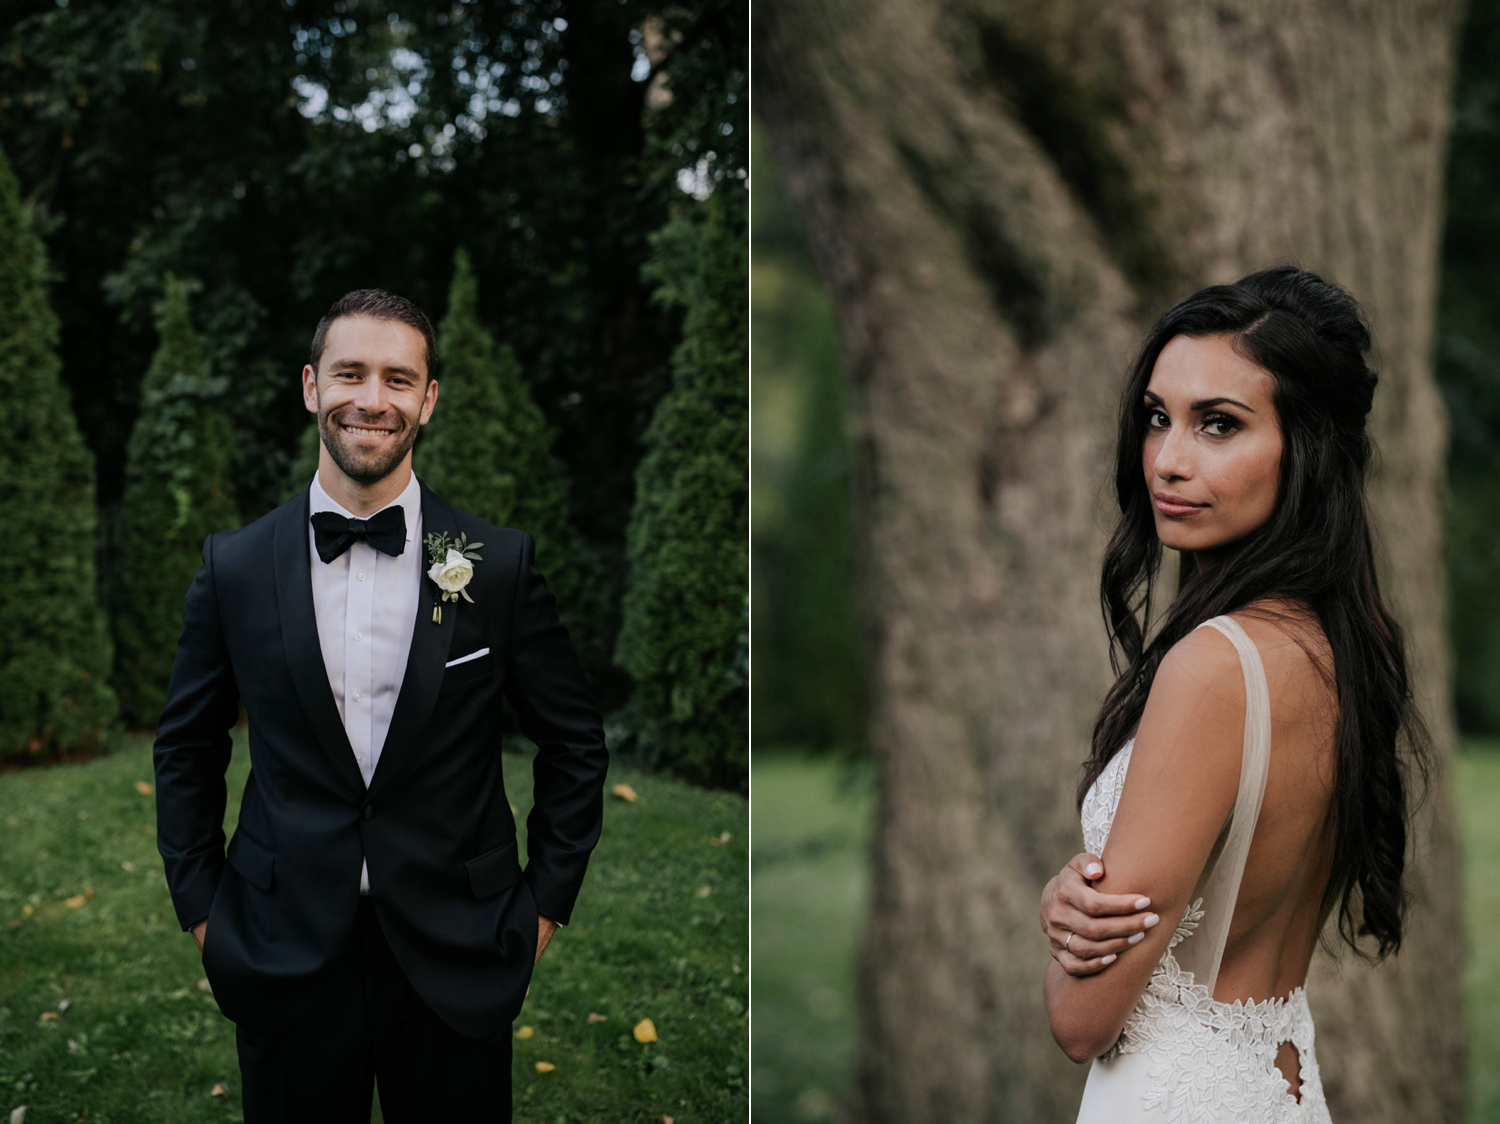 Groom and bride portraits at Madsen's Greenhouse wedding venue in Newmarket close to Toronto